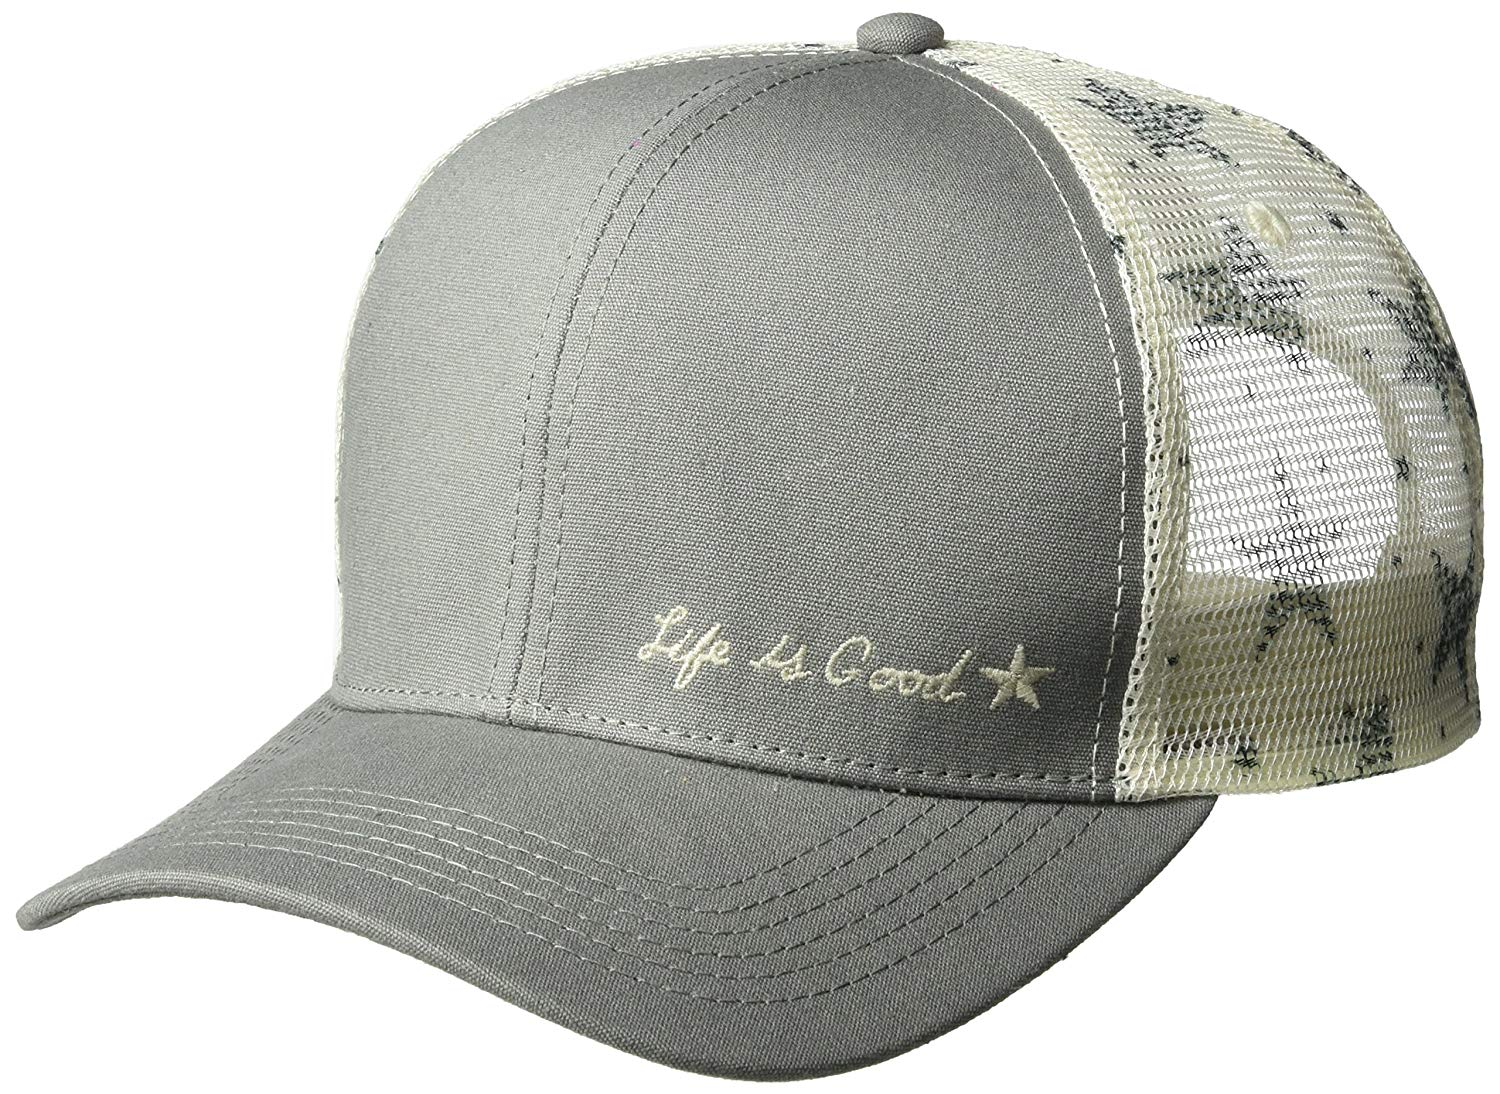 c9d24c8a150 Get Quotations · Life is Good Hard Mesh Back Chill Cap Starry Icon Hat